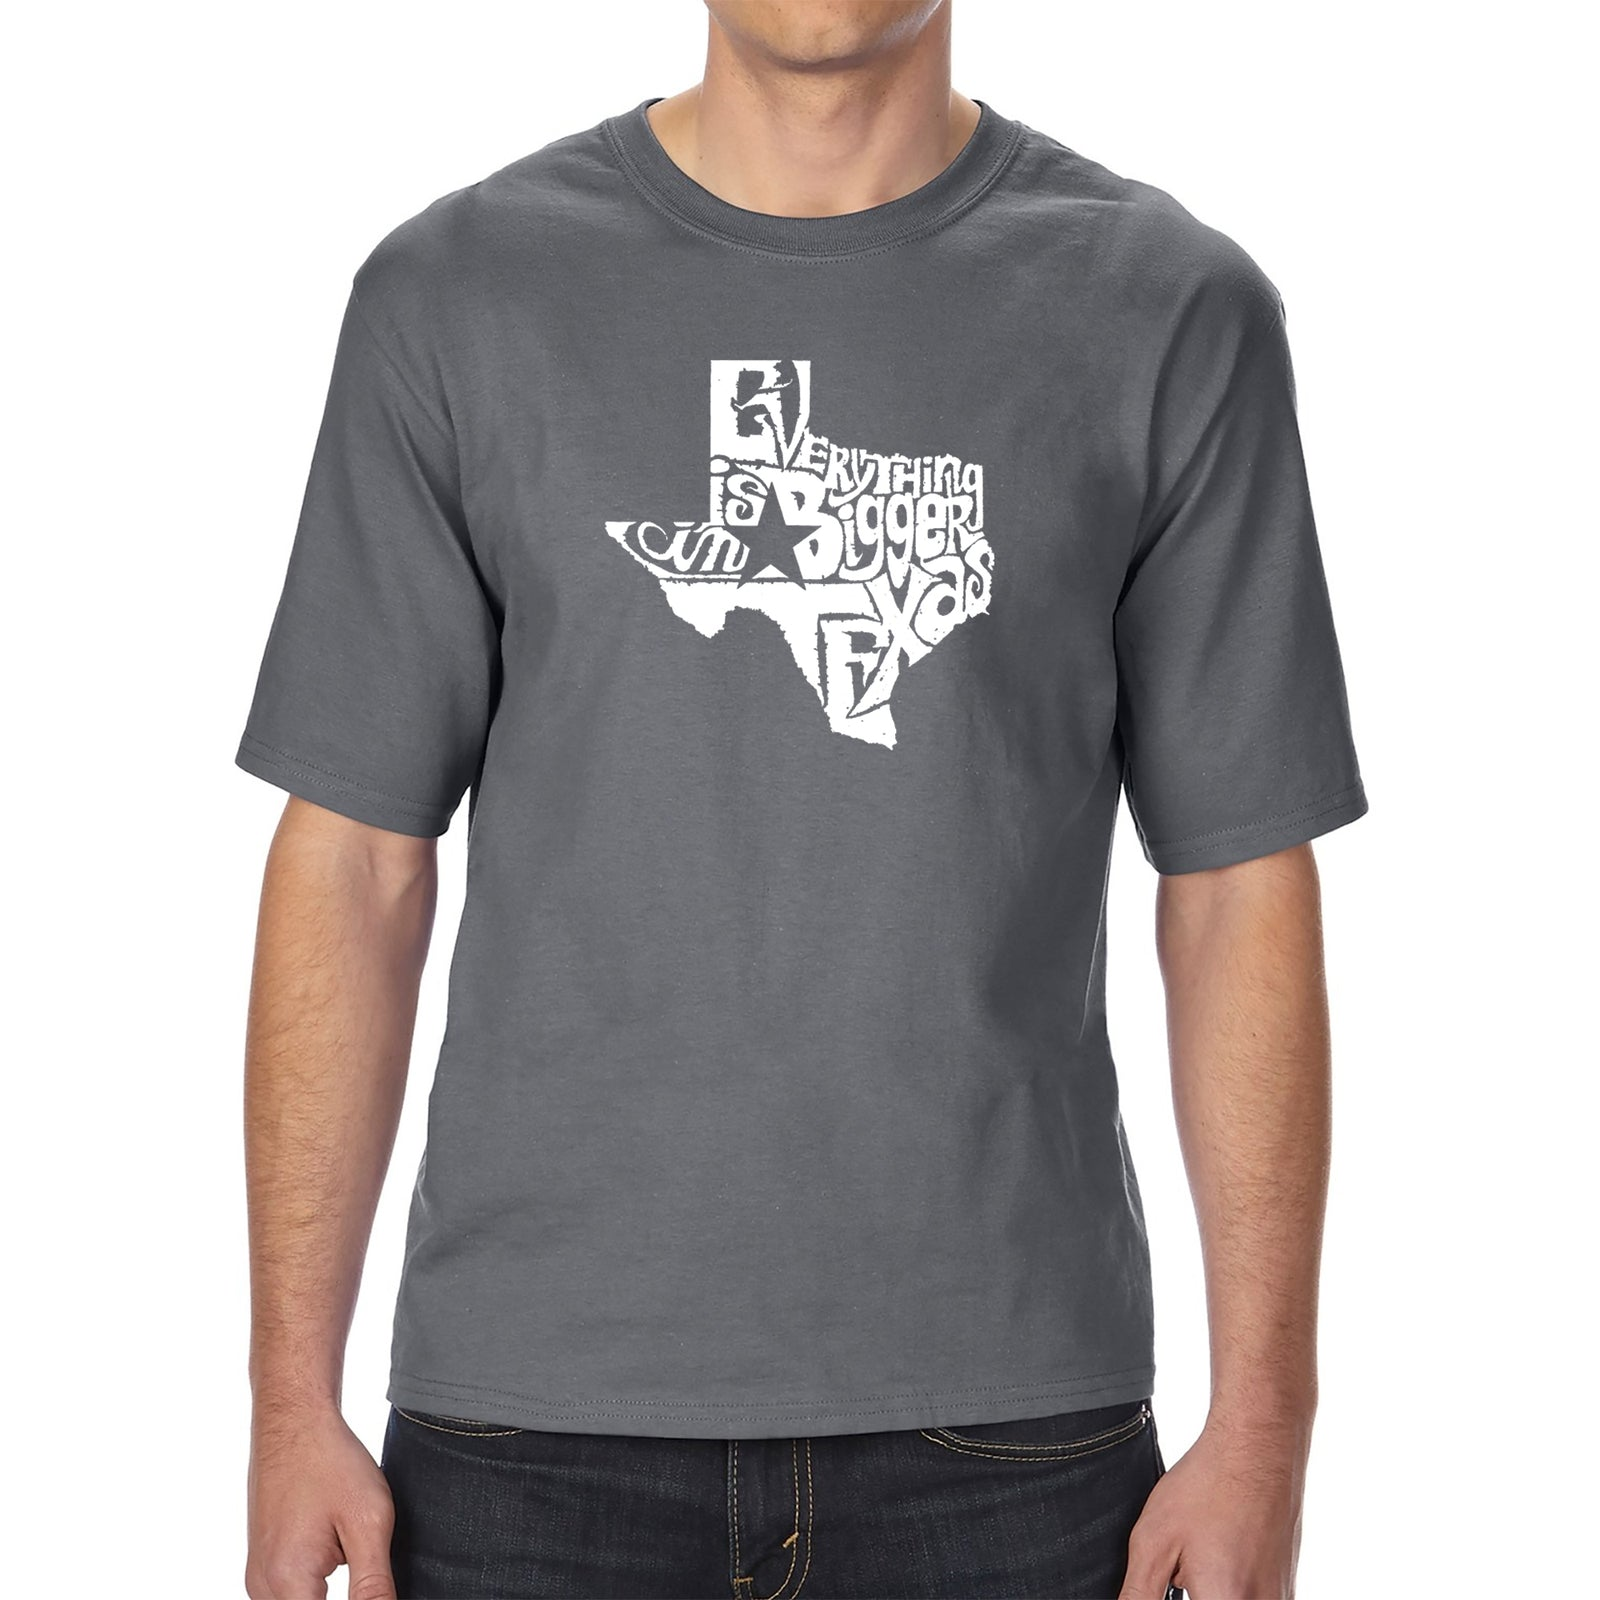 Men's Tall and Long Word Art T-shirt - Everything is Bigger in Texas